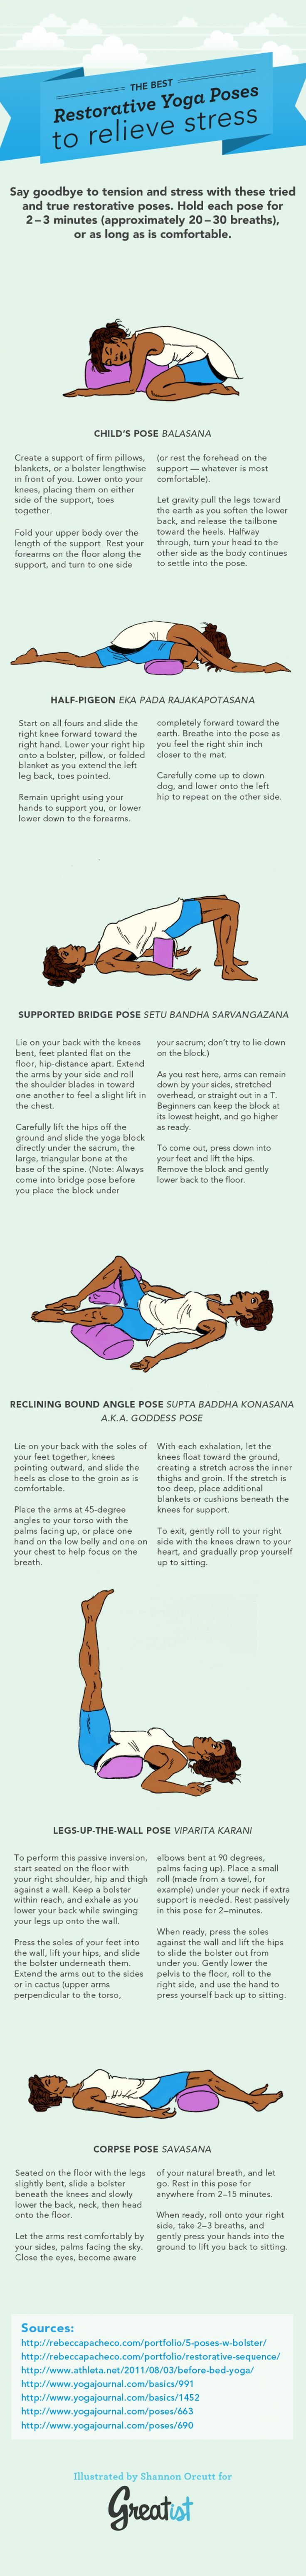 The Best Restorative Yoga Poses to Relieve Stress [Infographic] Infographic by Shannon Orcutt, greatist via visually #Infographic #Yoga #Restorative_Yoga #Stress